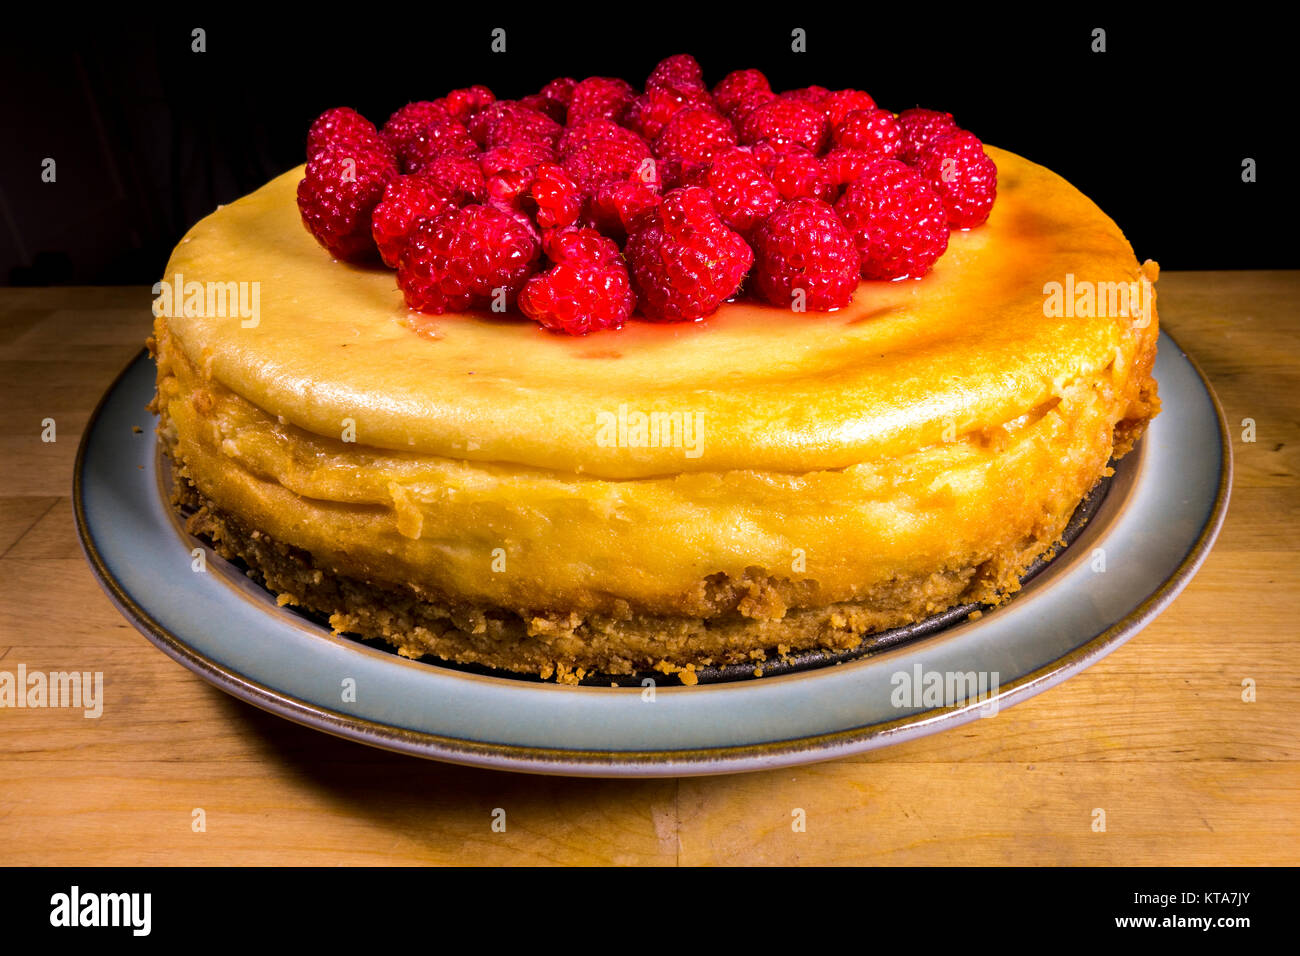 An appetising whole raspberry topped cheesecake sitting on a plate, consisting of a mascarpone cream cheese topping - Stock Image